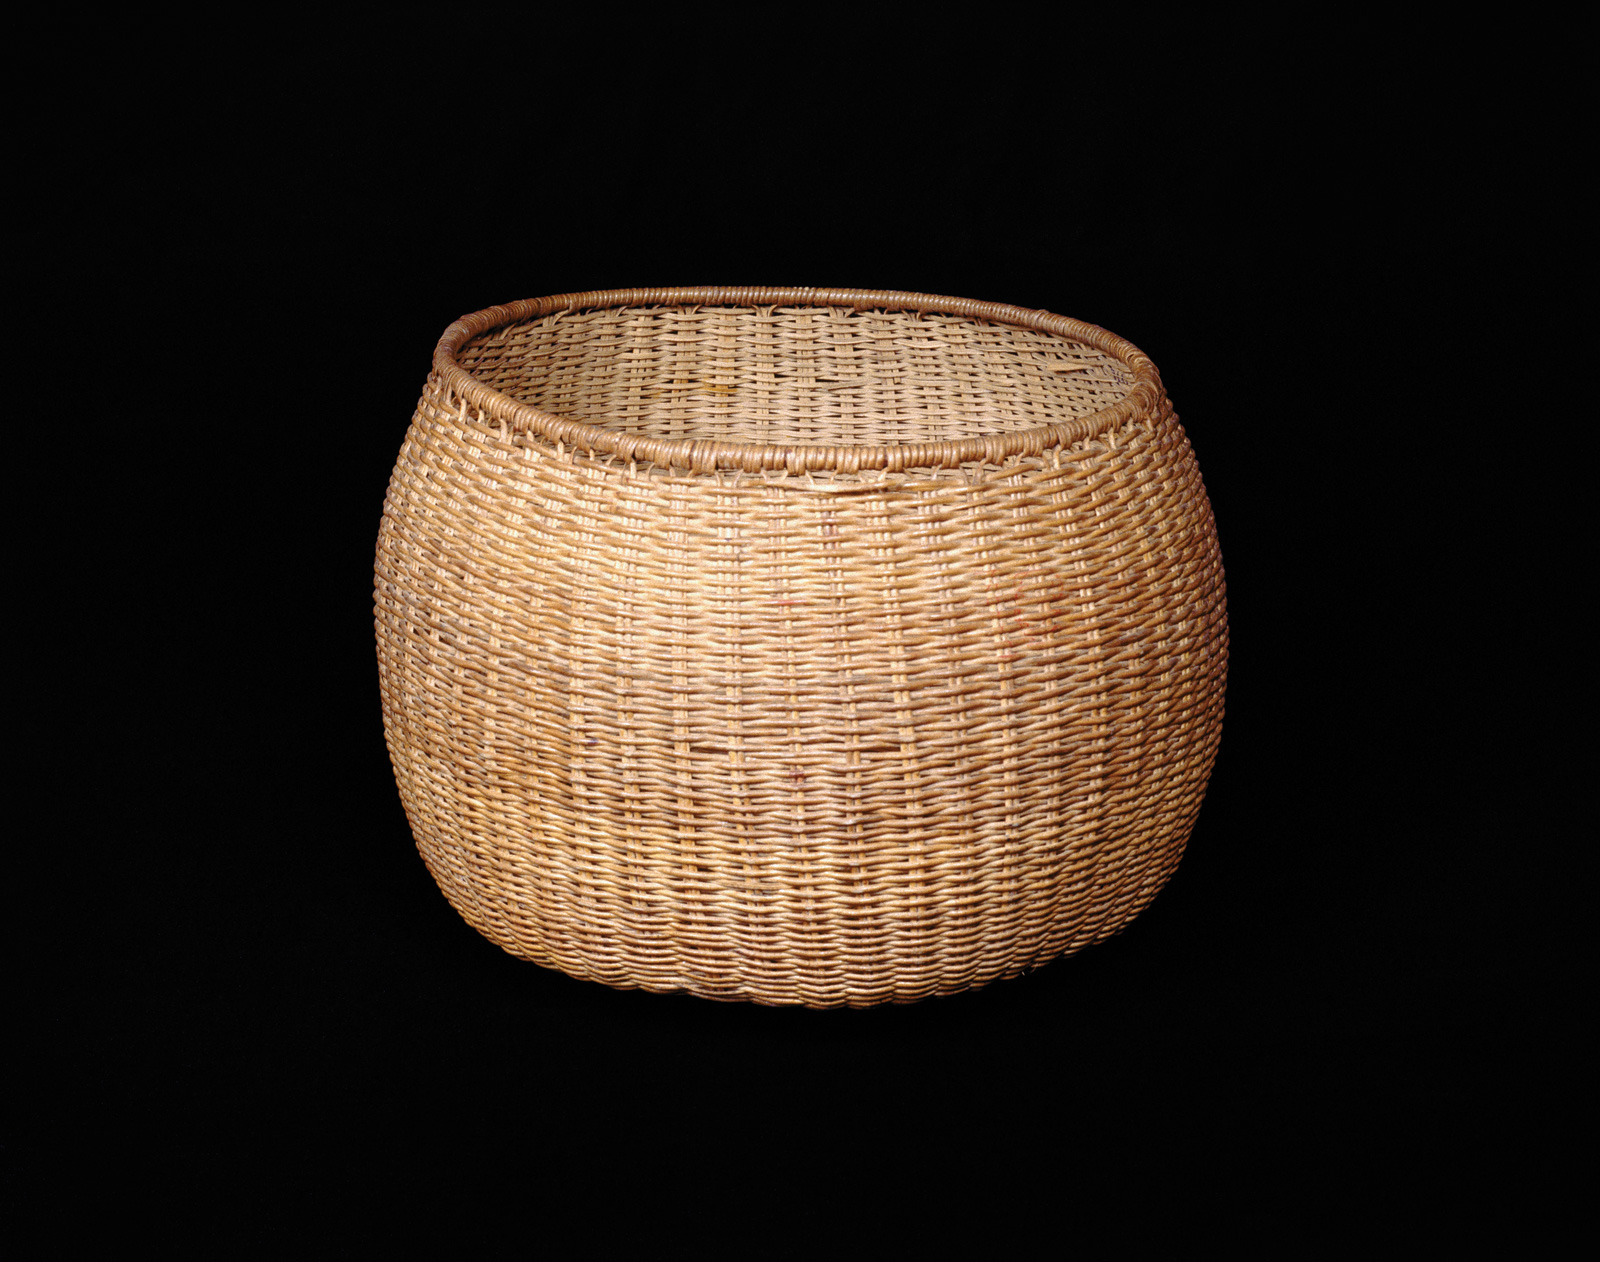 This robust basket made of mamure fibers is another example of the beautiful Baré basketmaking.